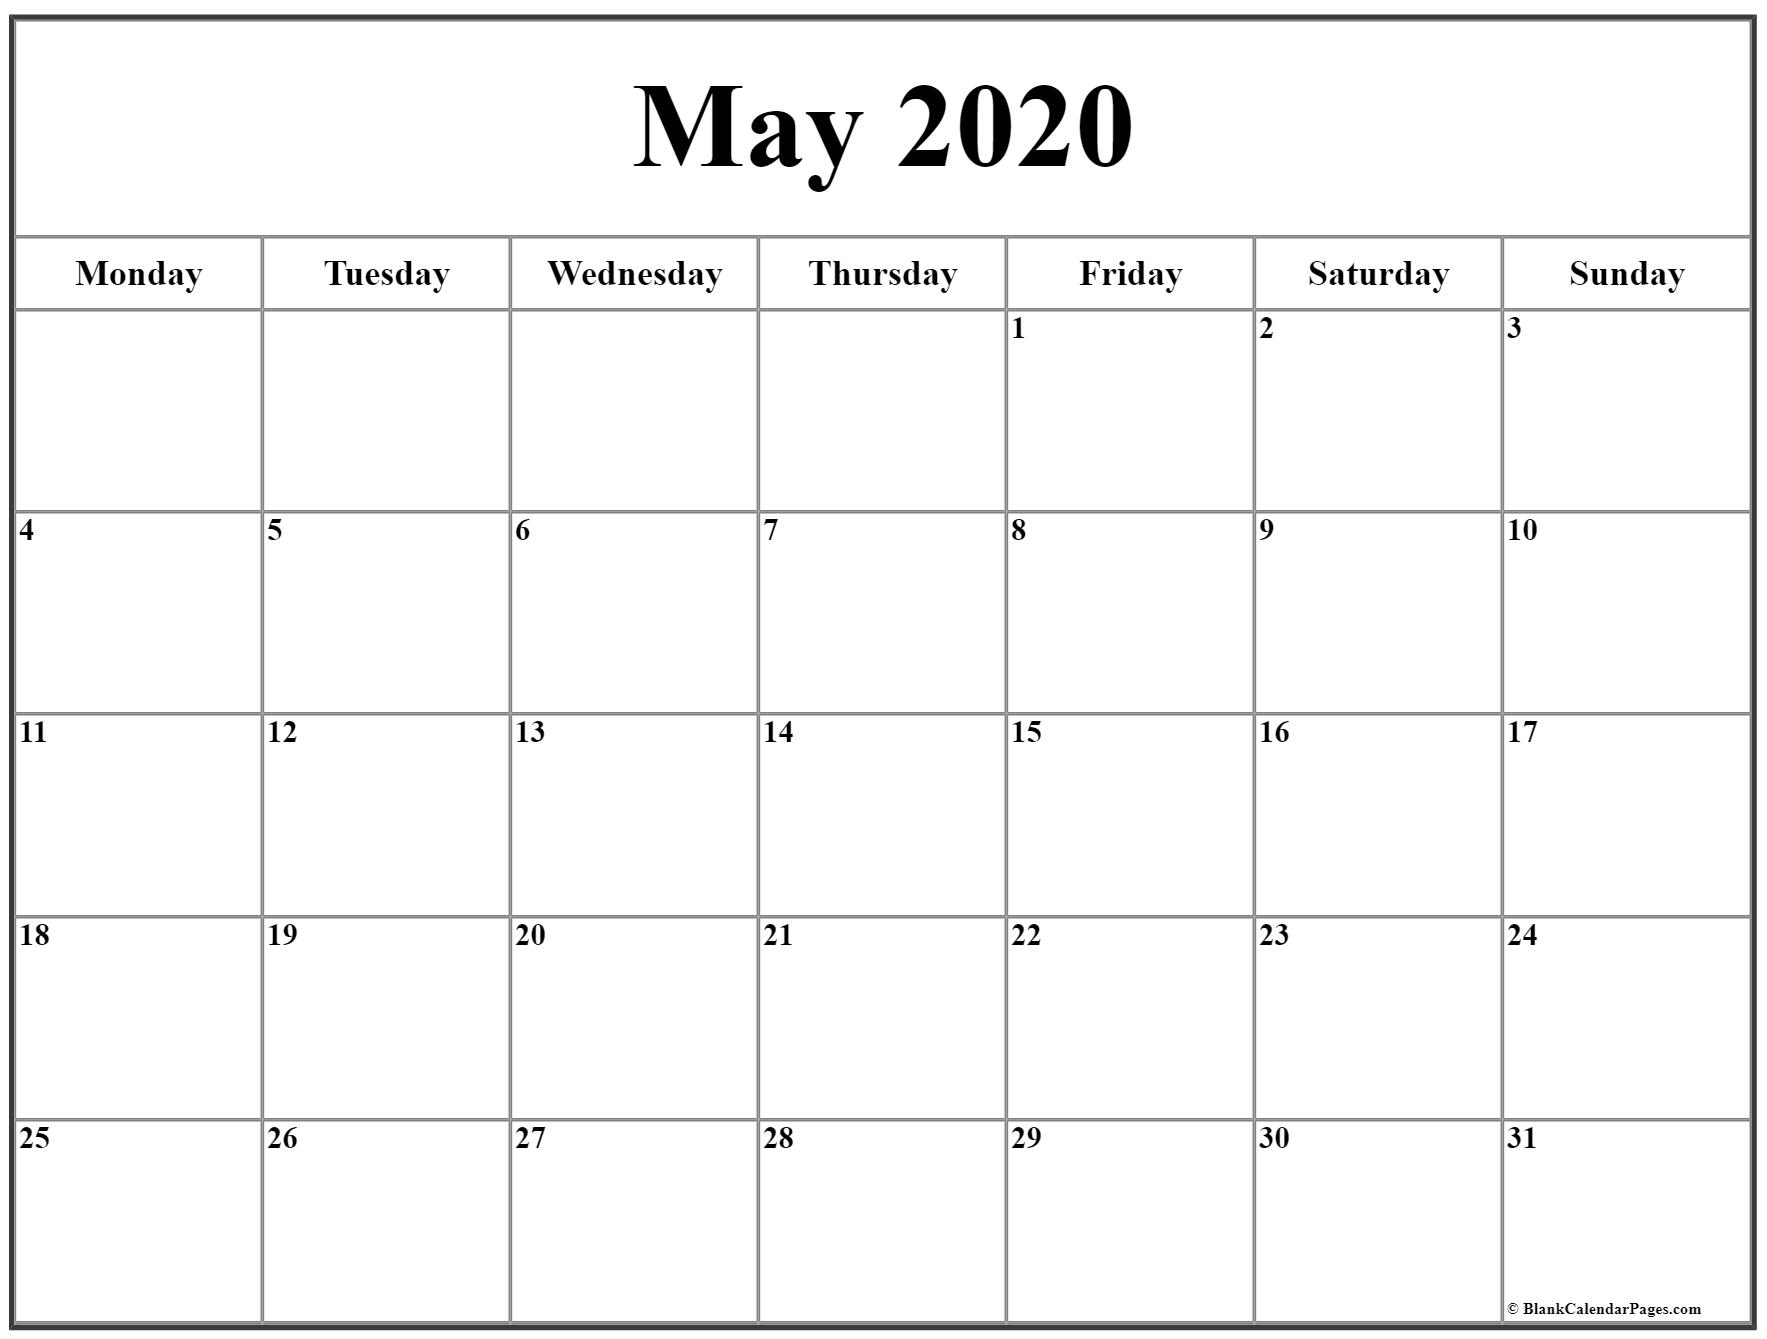 May 2020 Monday Calendar | Monday To Sunday throughout 2020 Monday To Sunday Calendar Printable